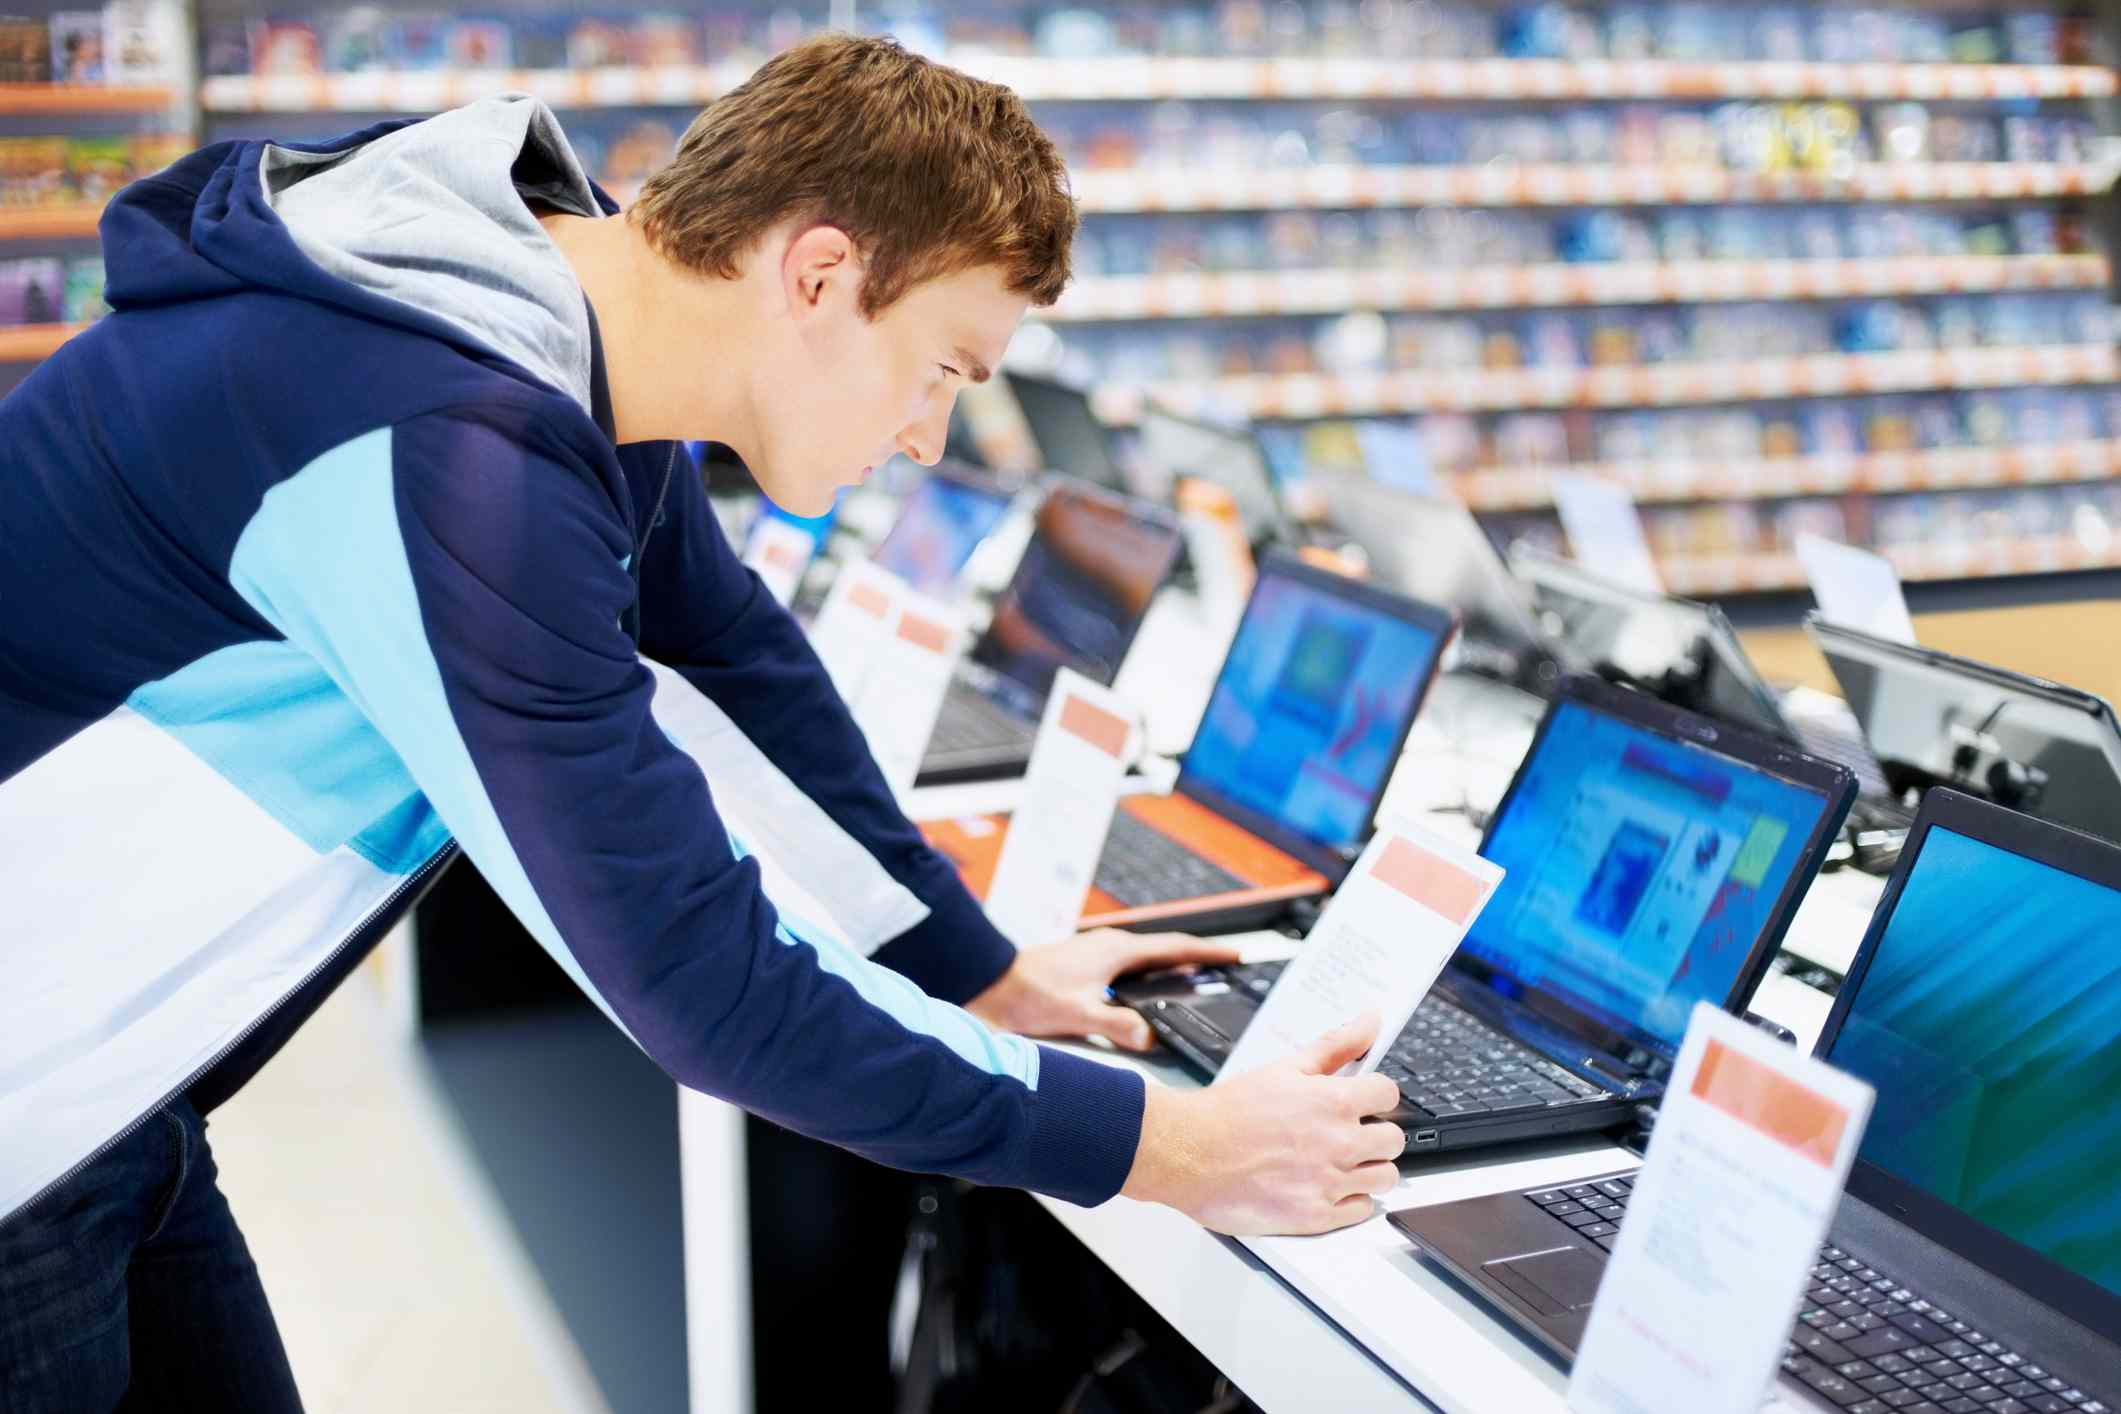 Person looking at laptops in a store.